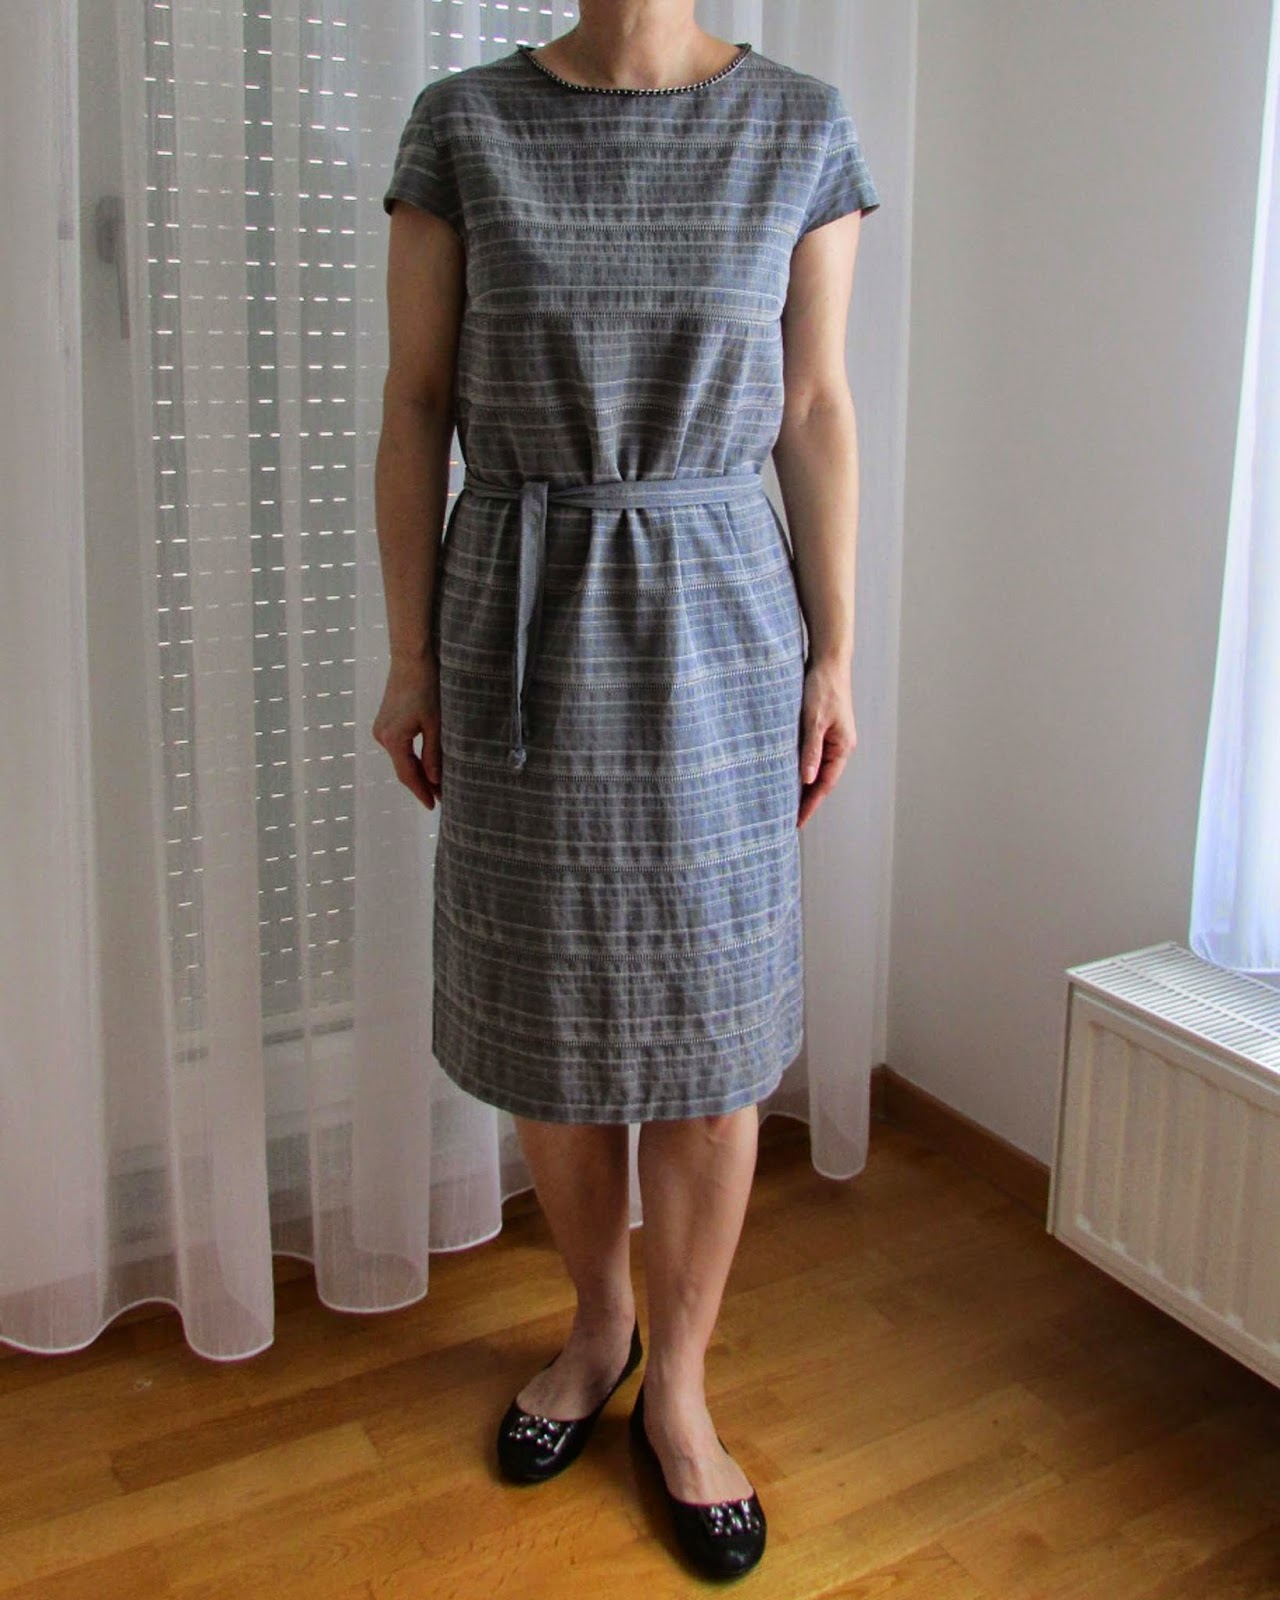 http://ladylinaland.blogspot.com/2014/07/embellished-grey-dress.html